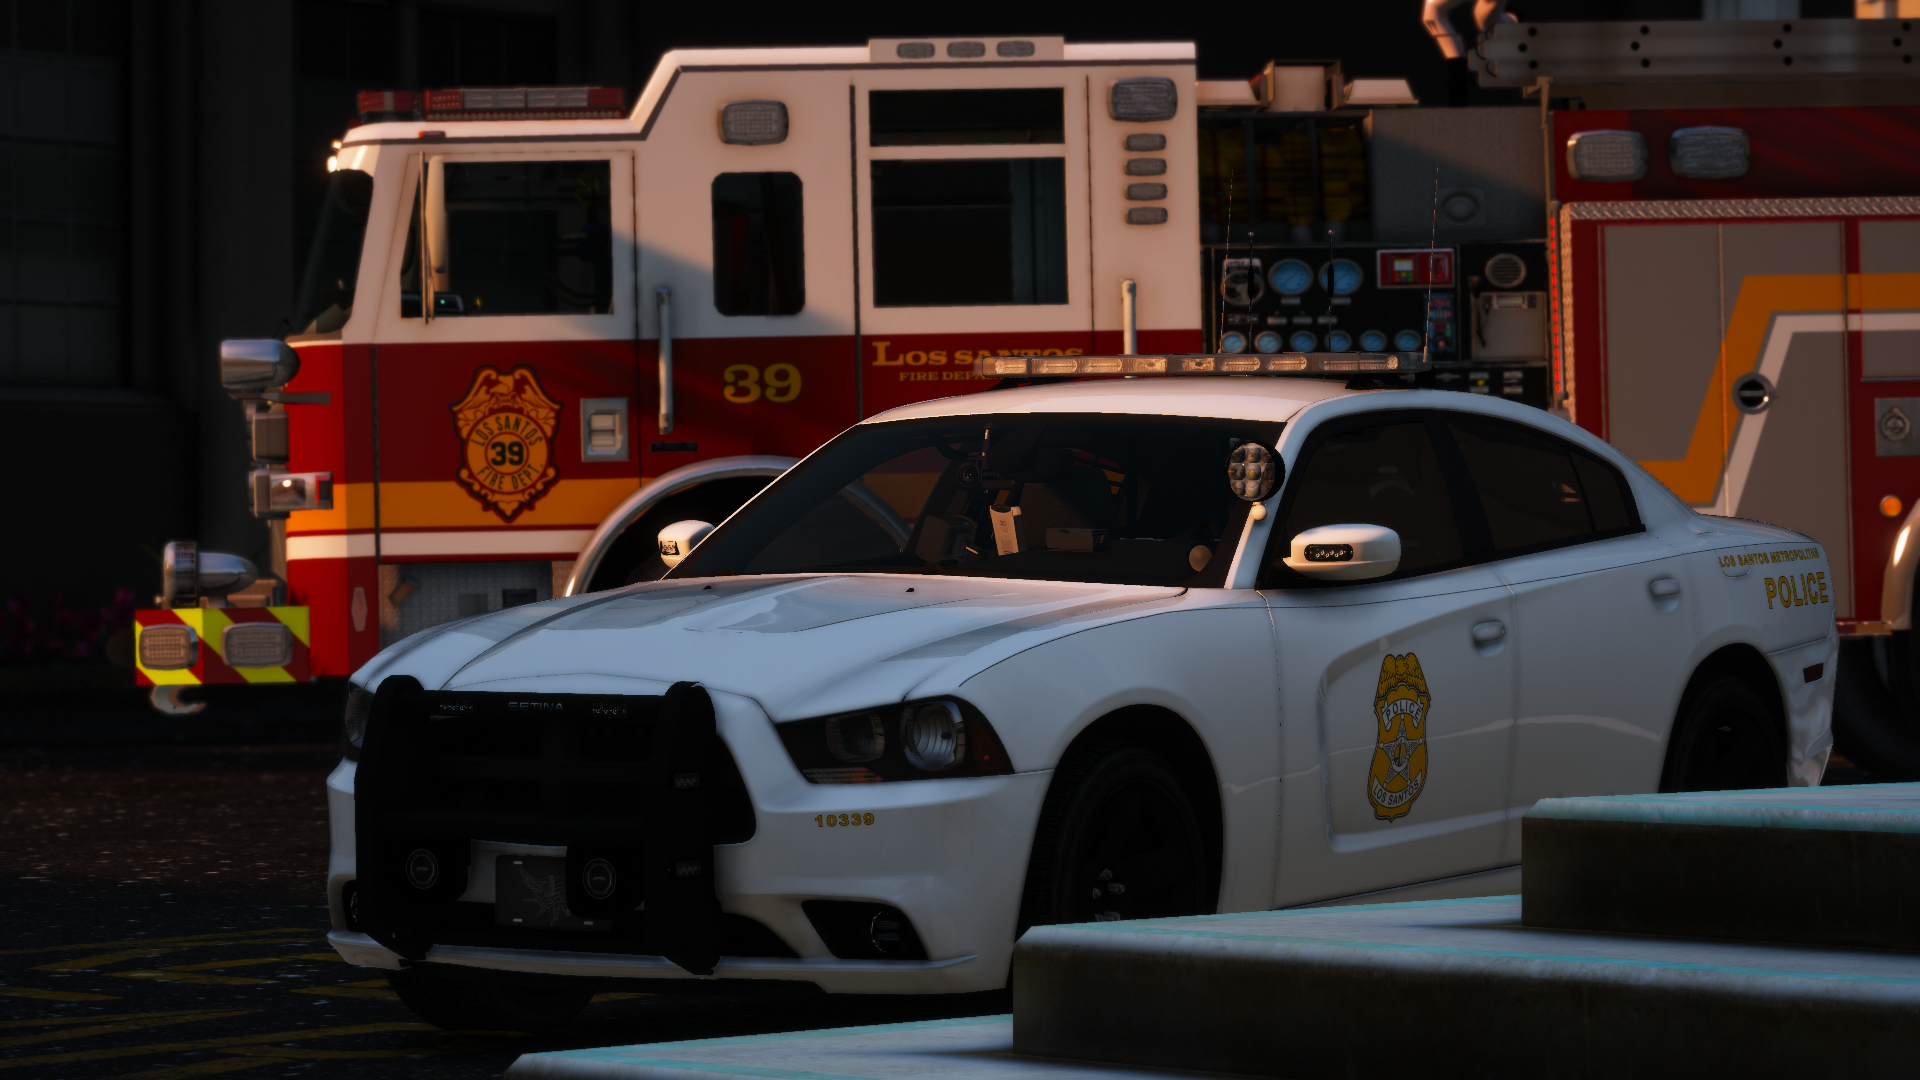 Engine 39 and LSMPD Charger